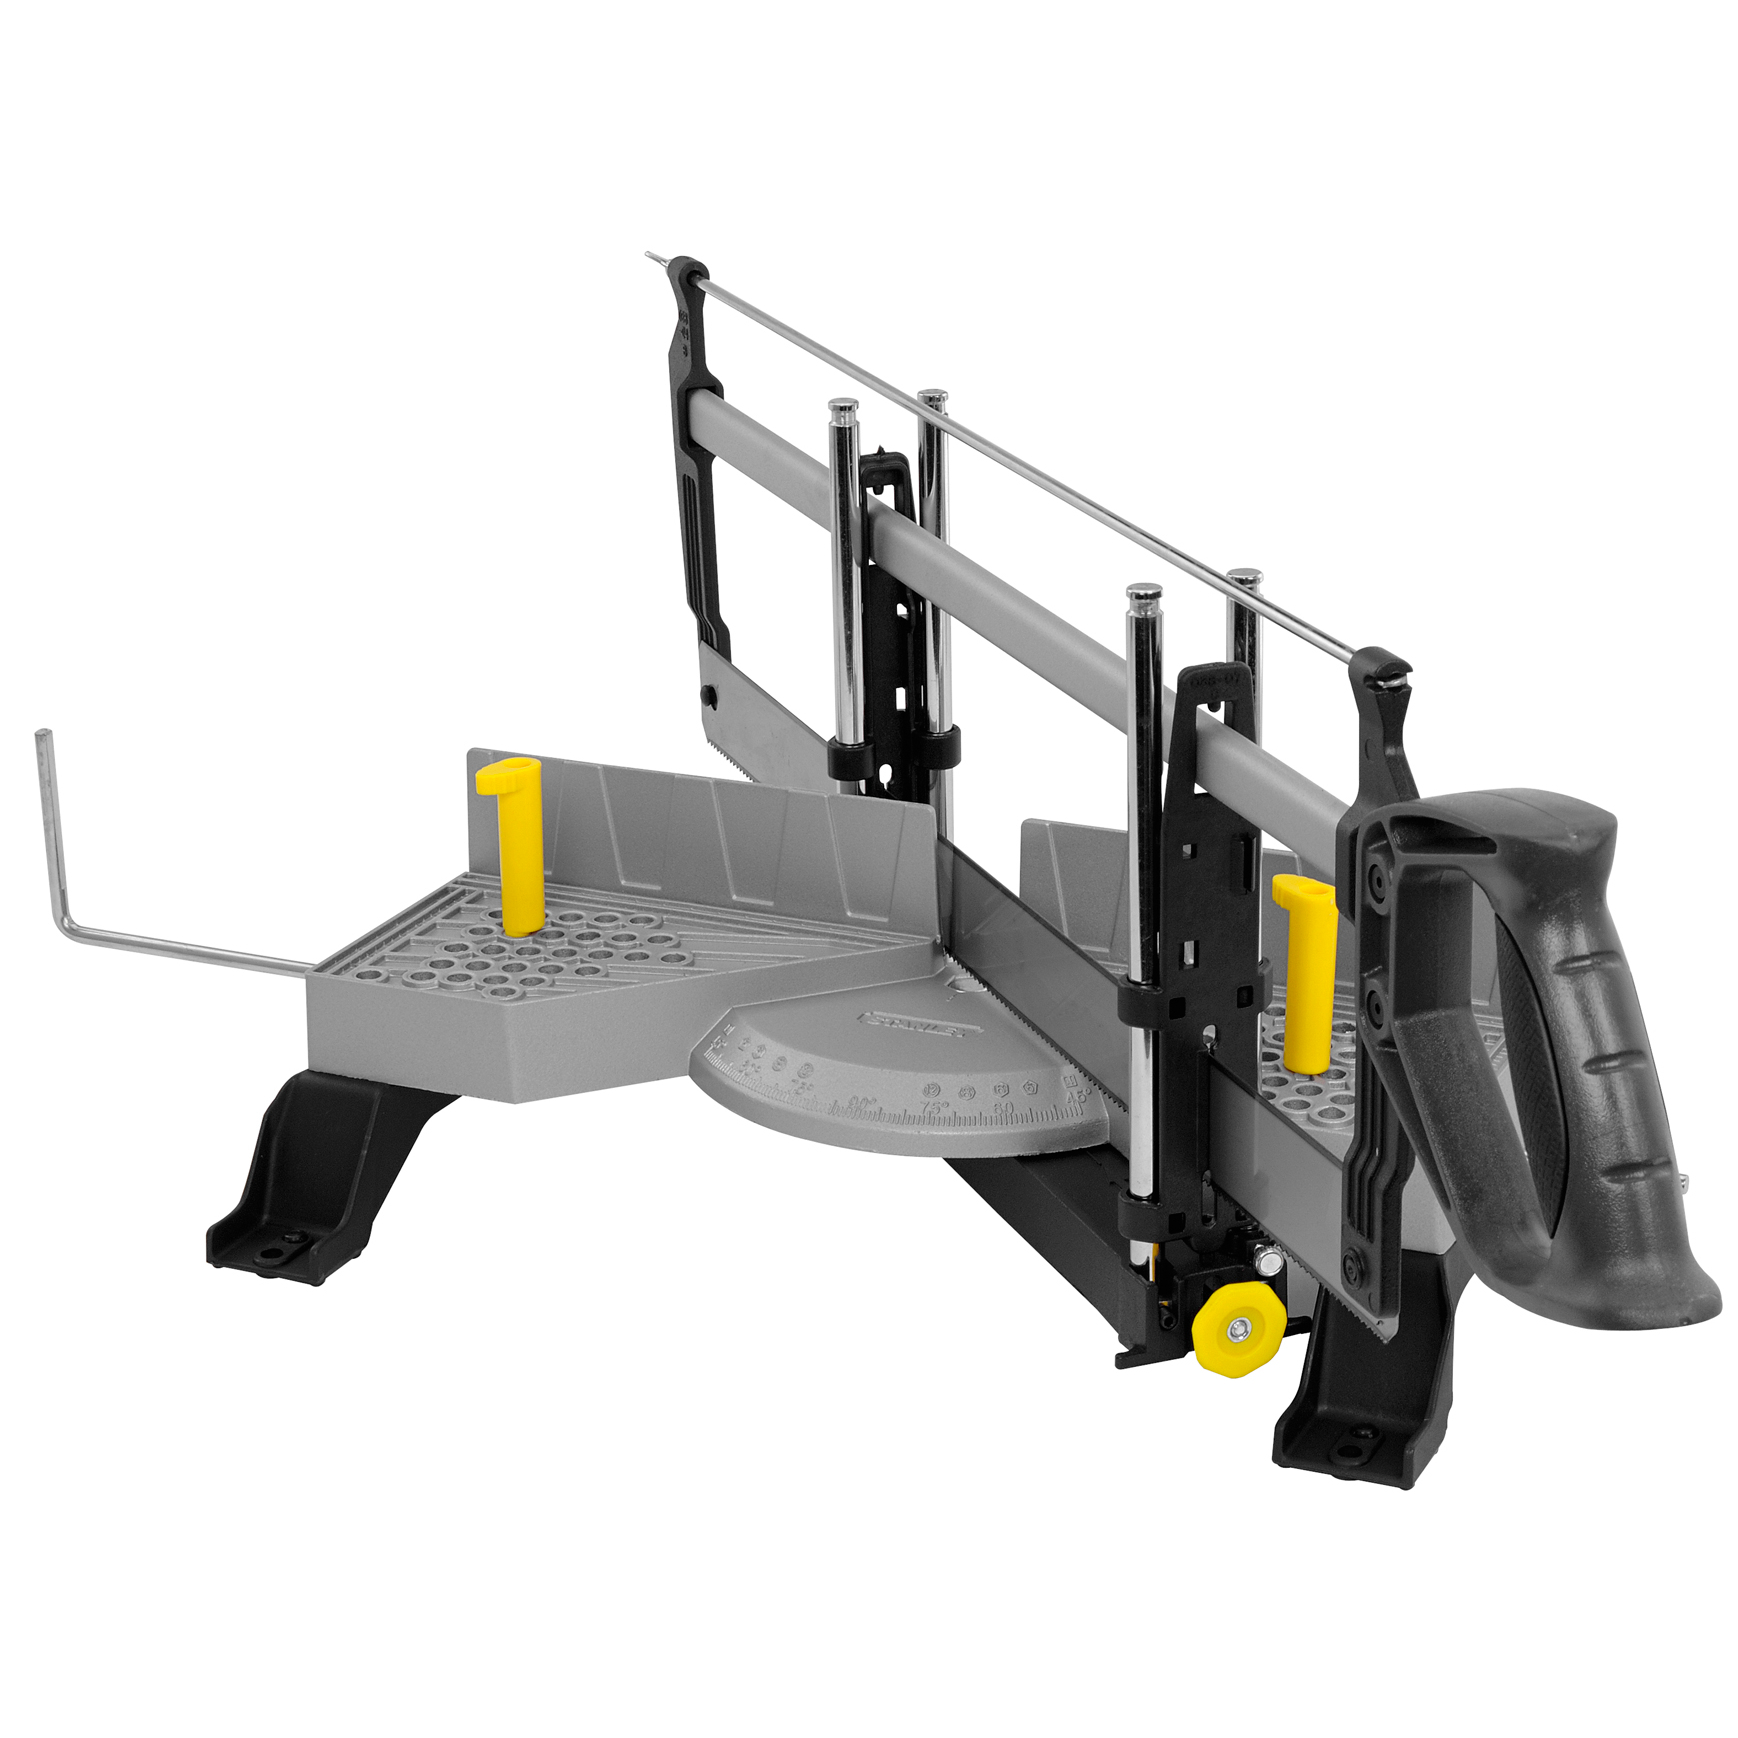 STANLEY 20-800 Contractor Grade Clamping Mitre Box